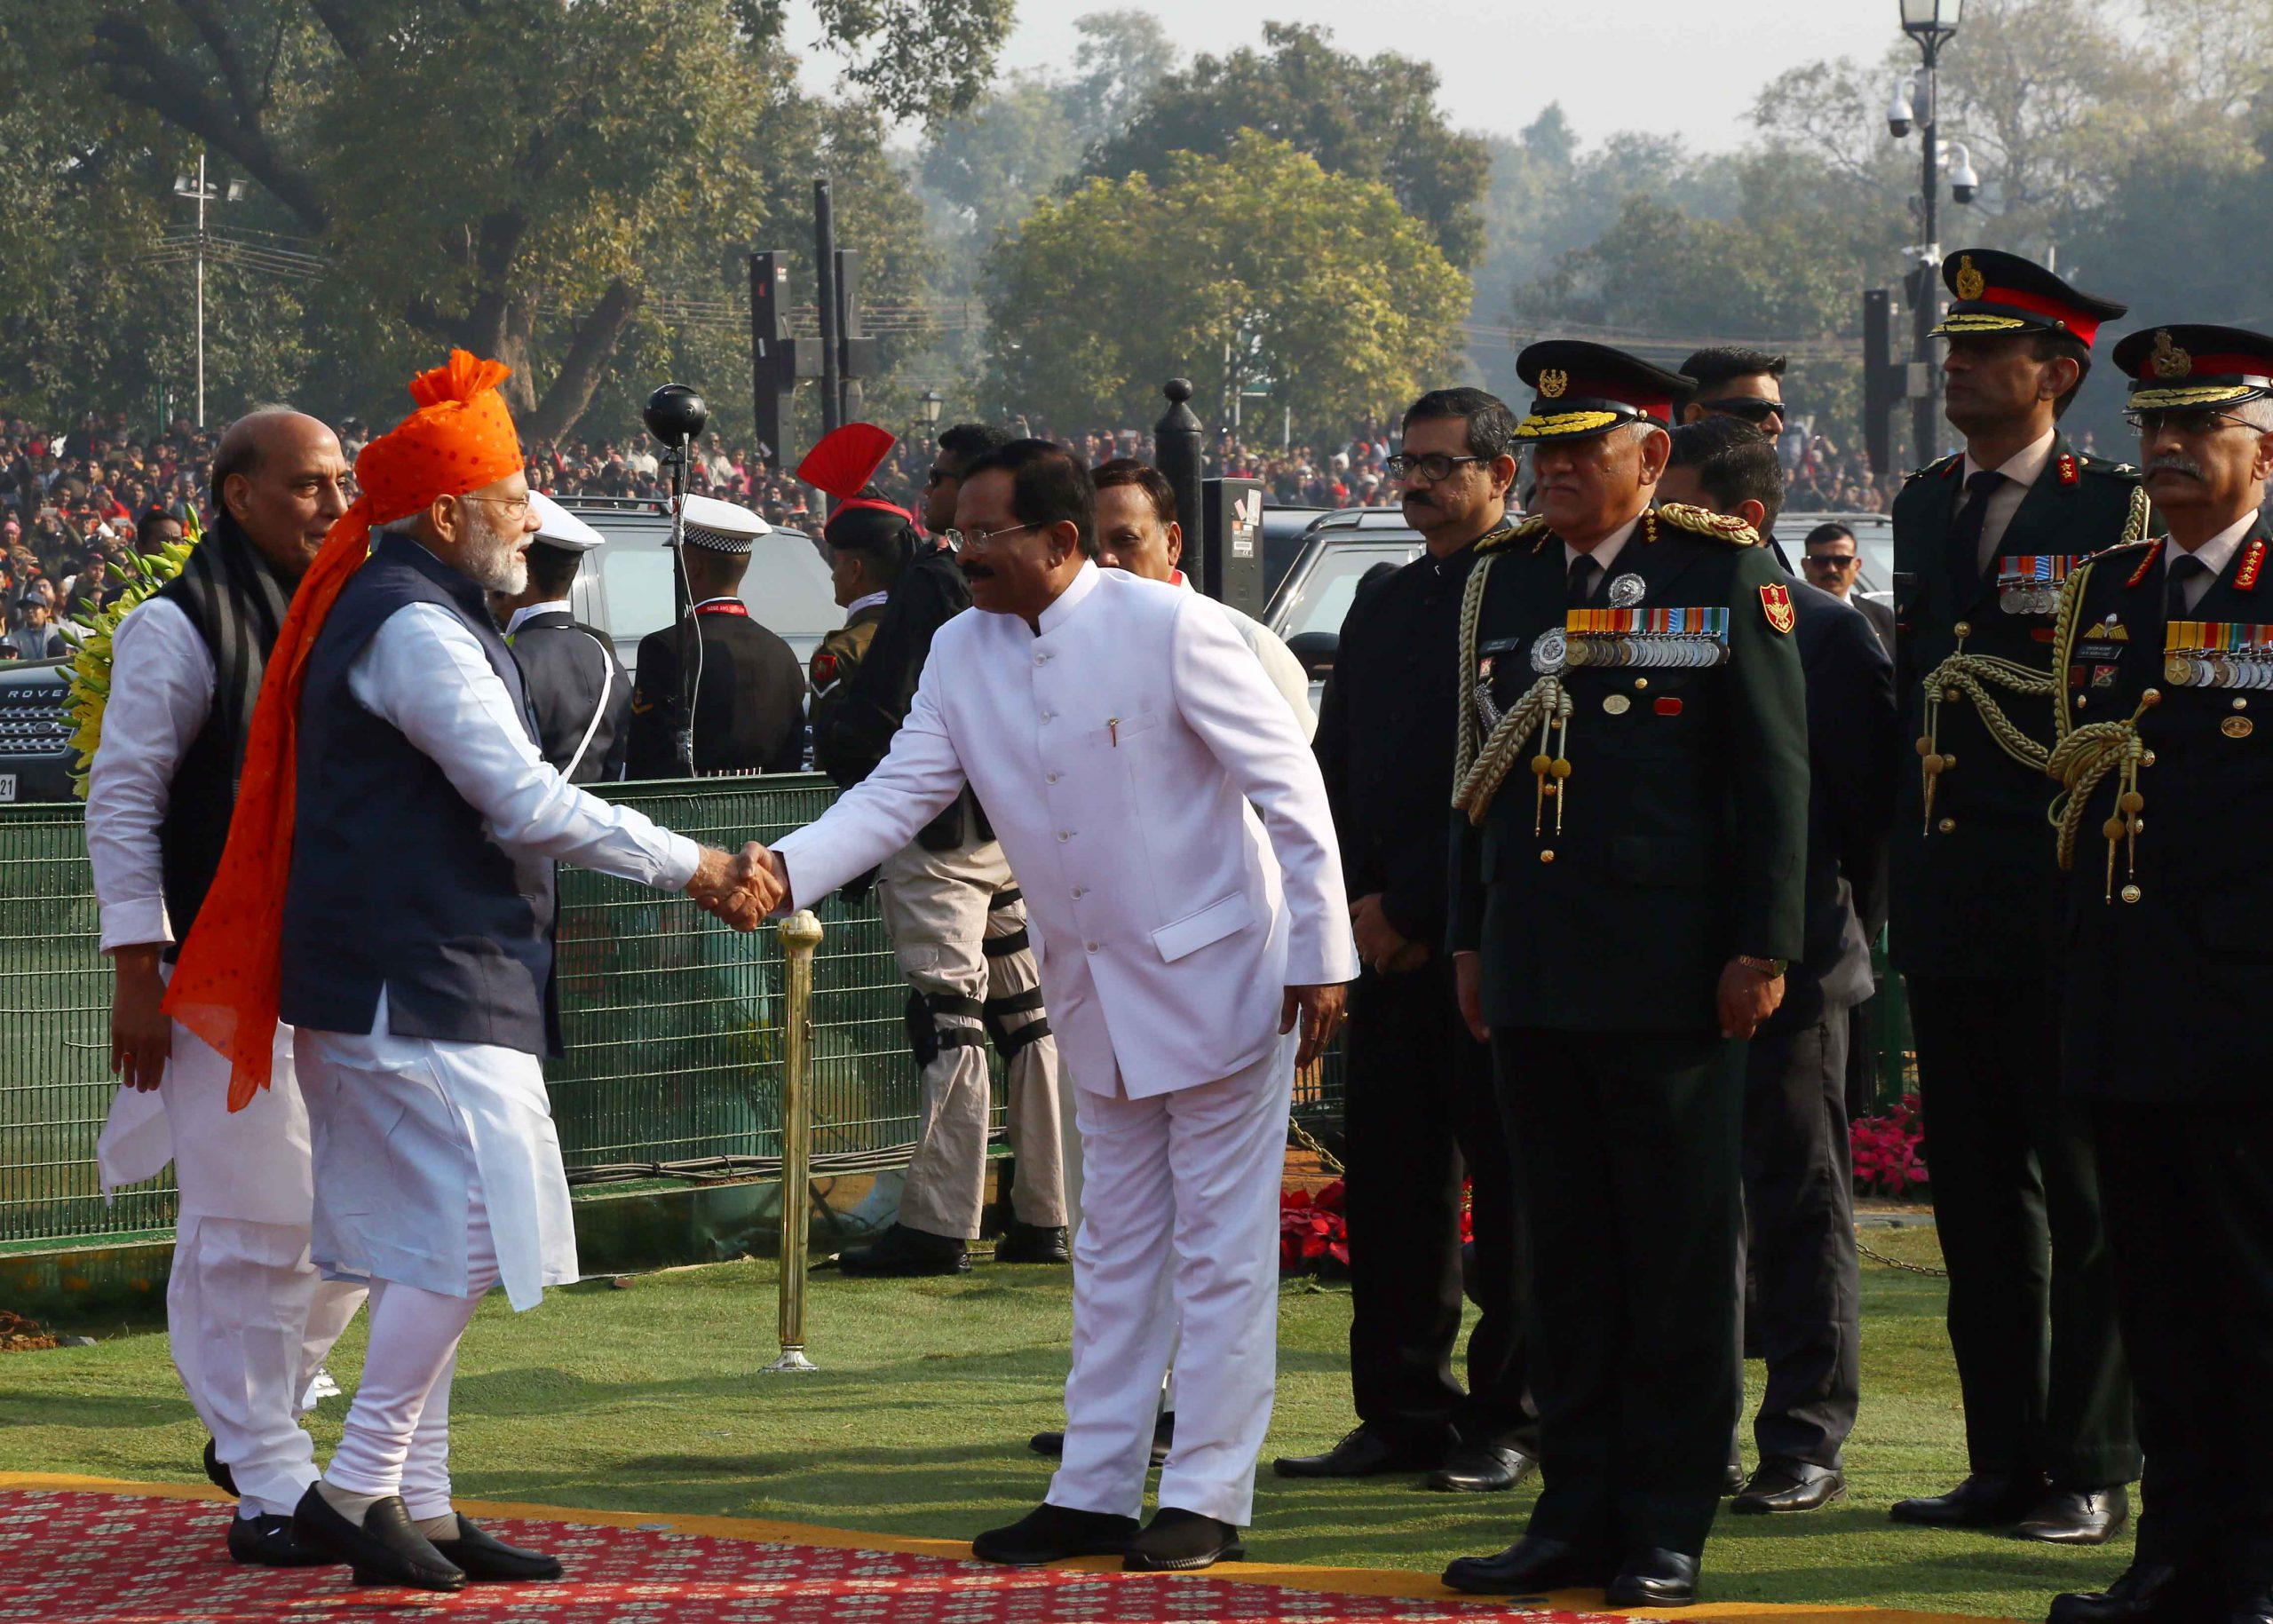 VVIP's Arriving at Saluting Dias, on the Occasion of 71st Replubic Day Parade 2020 on 26-01-2020